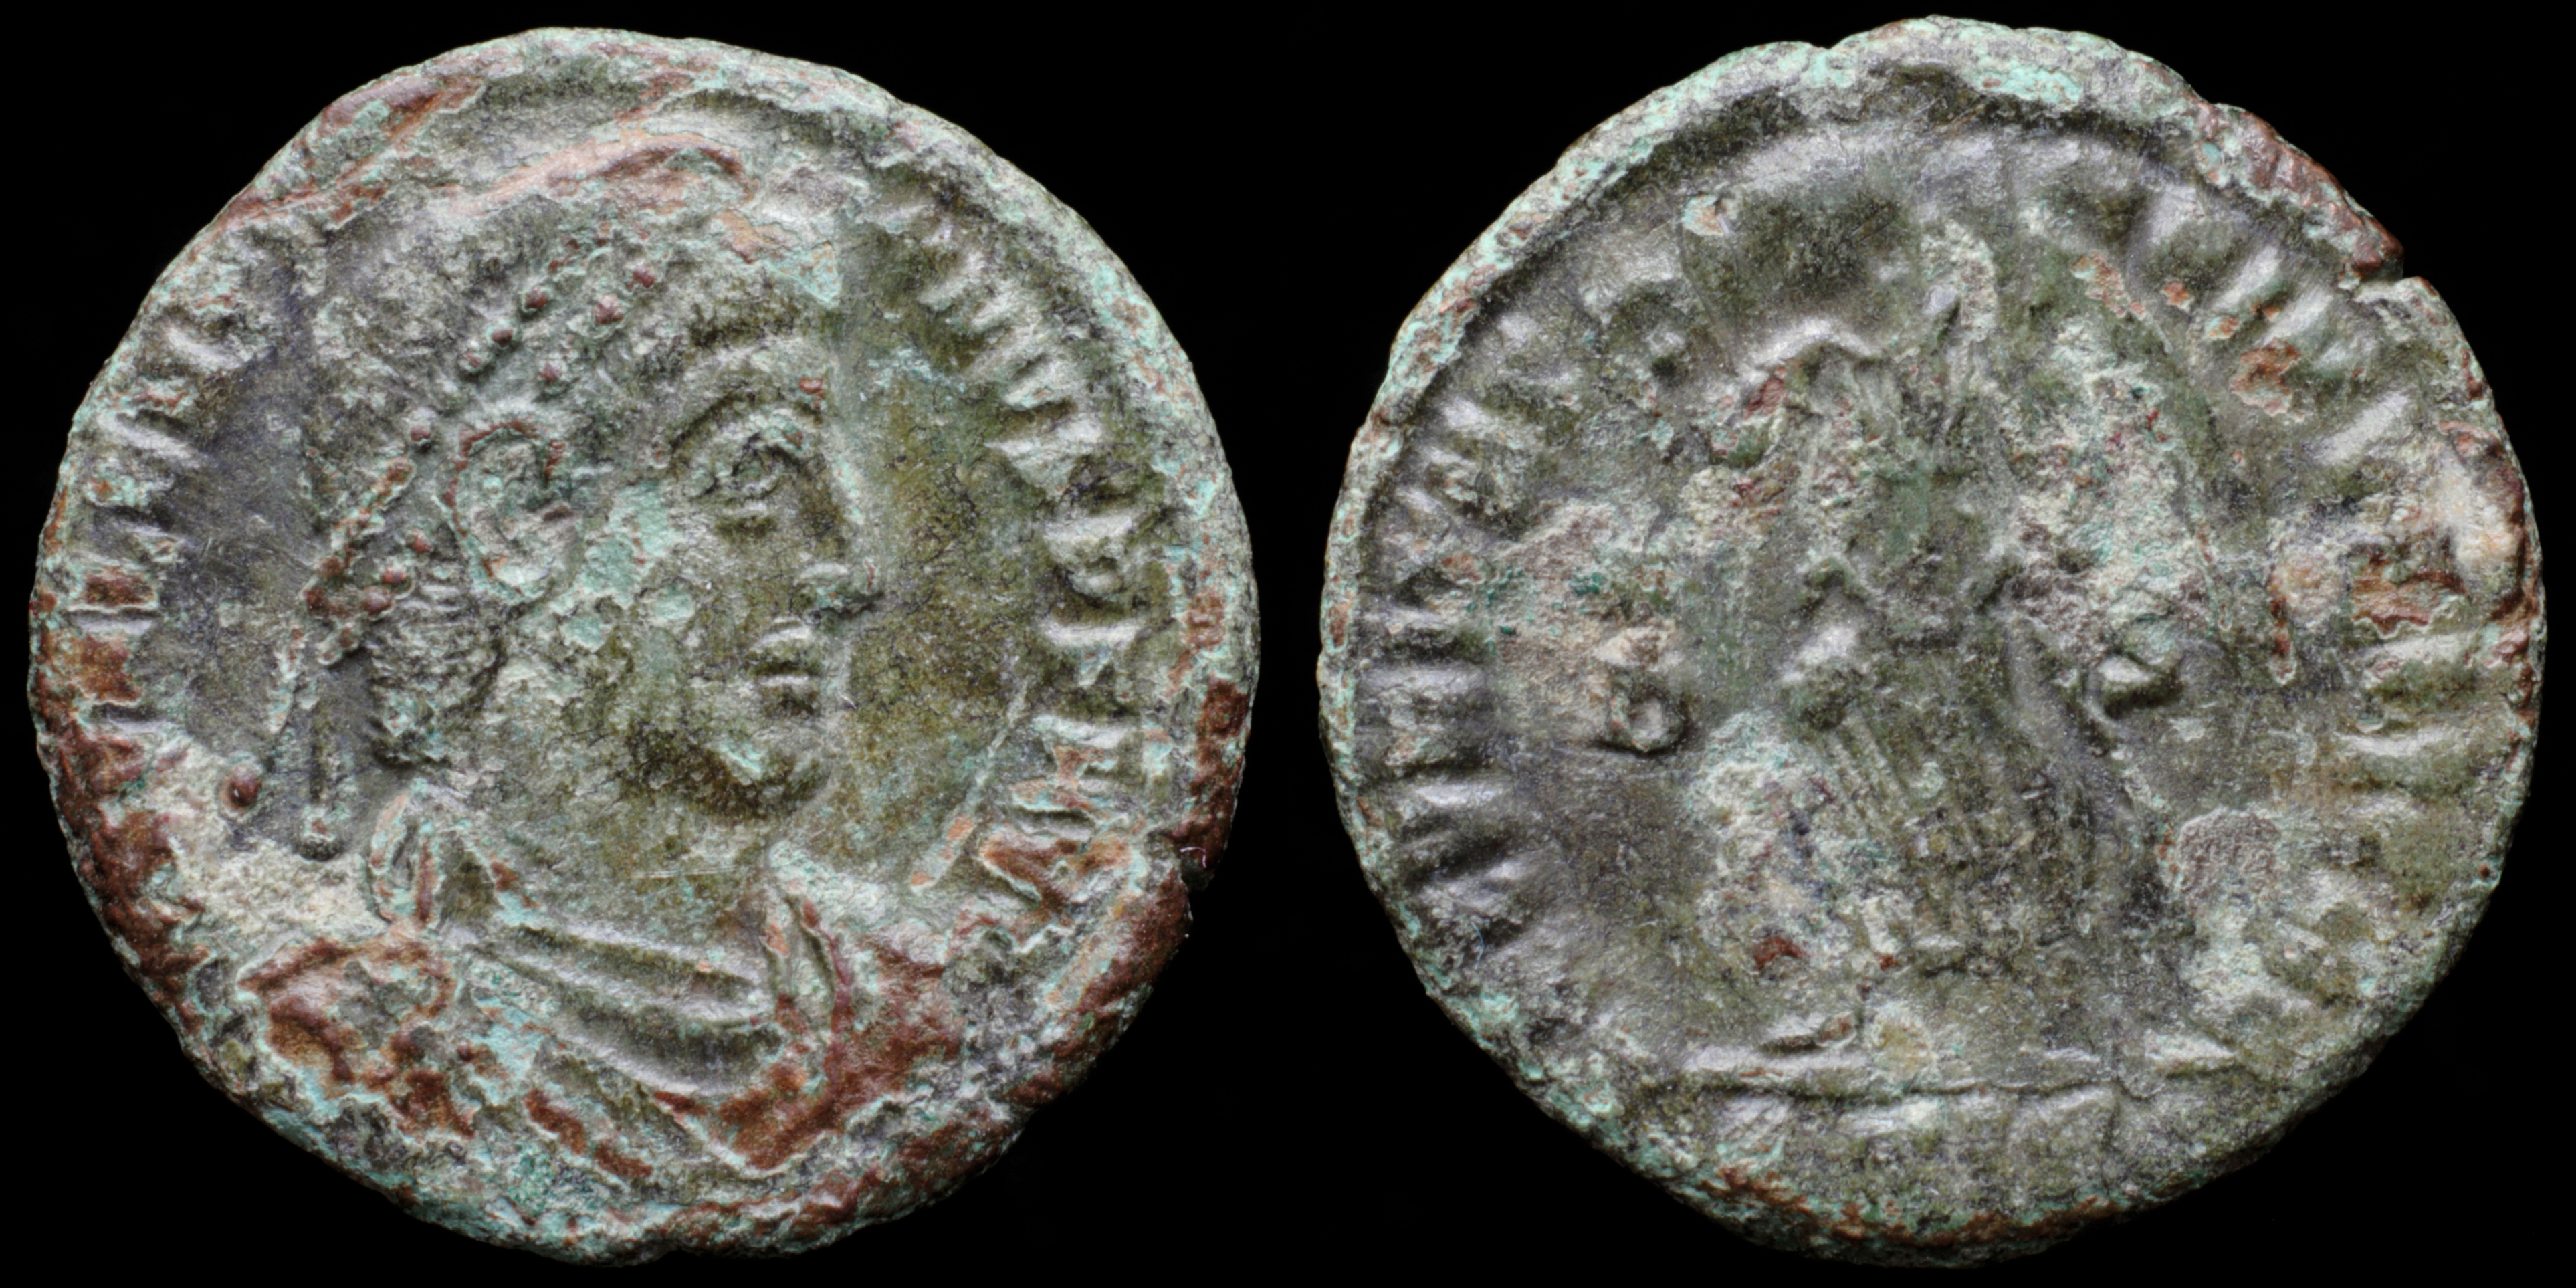 /Files/Images/Coinsite/CoinDB/325_Valentinian_I_xD_S_DSISC.jpg